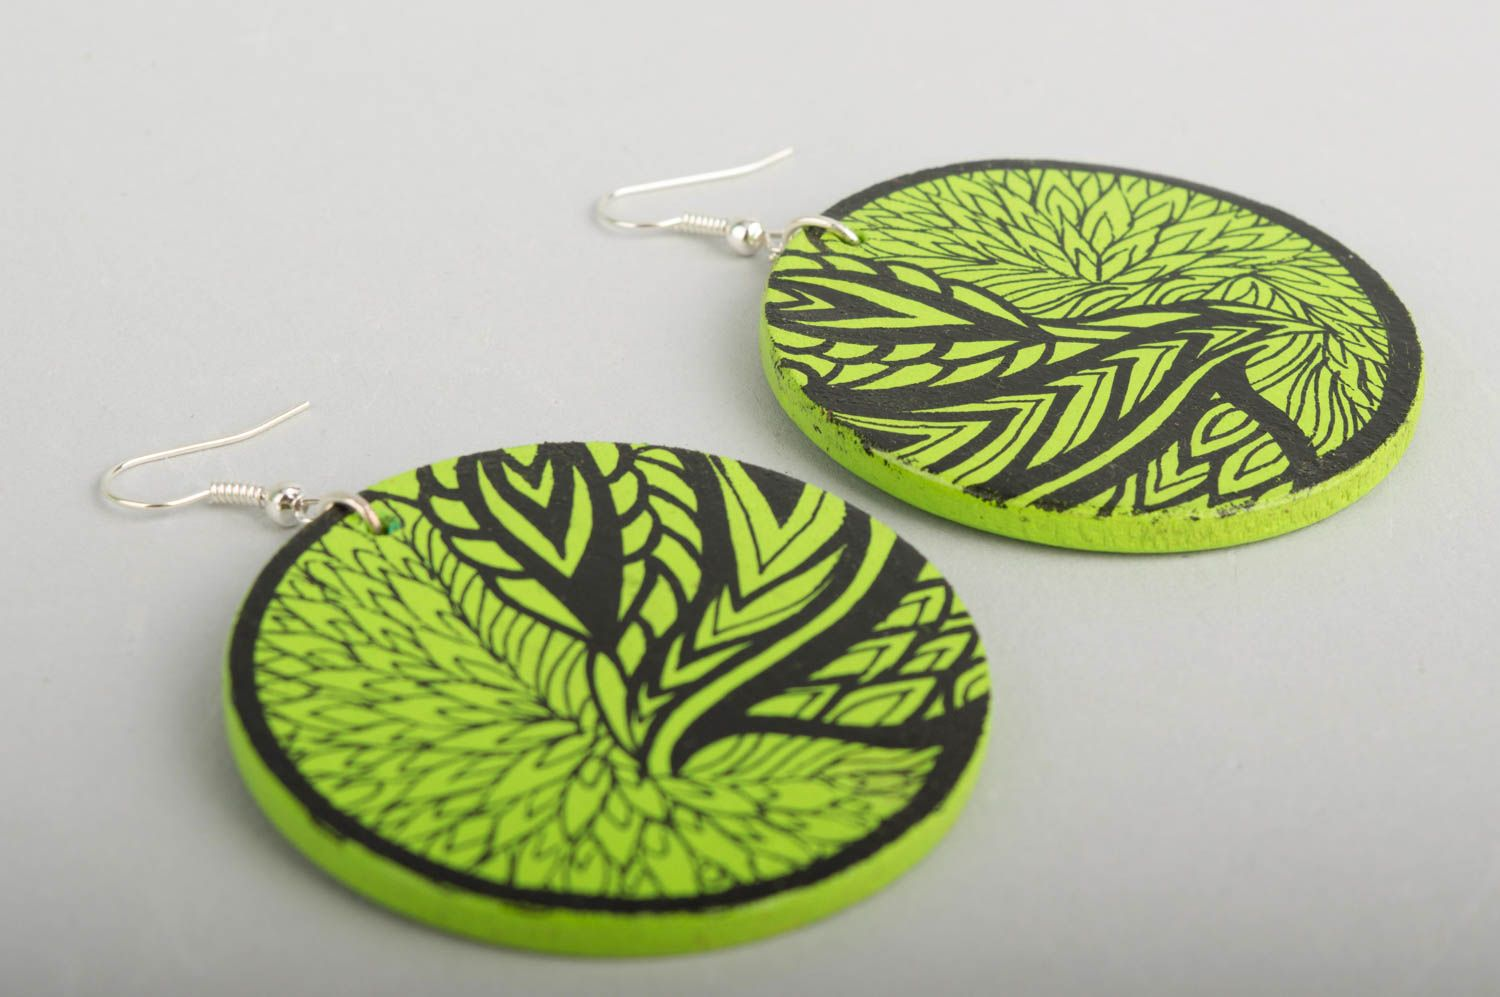 Fashion jewelry handmade earrings wooden jewelry designer accessories gift ideas photo 4